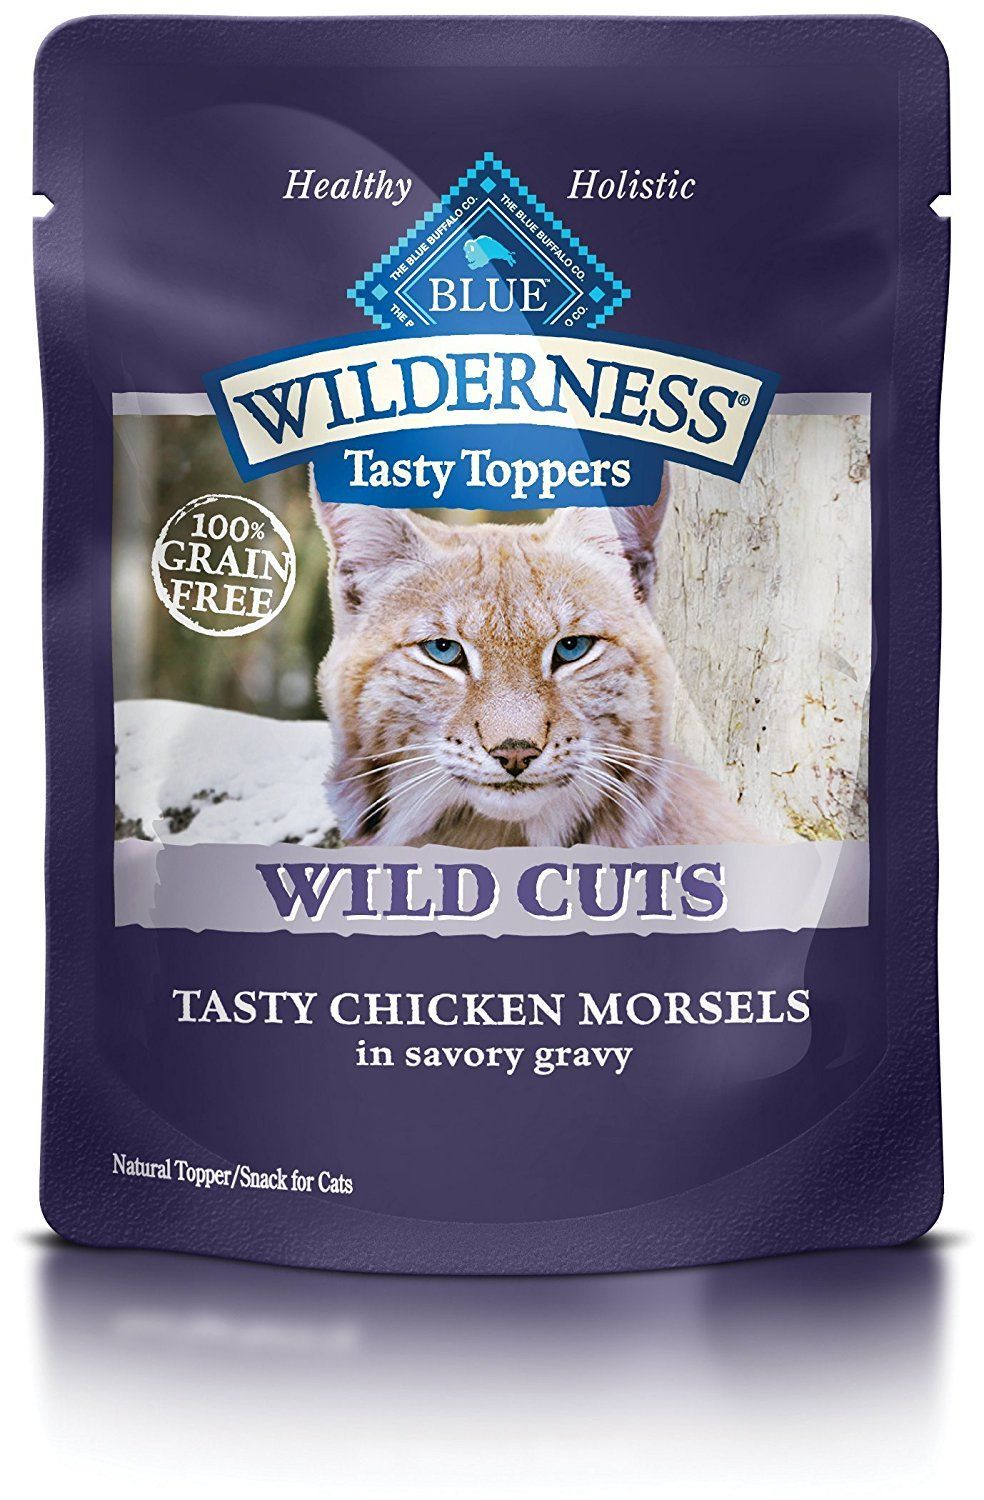 Best Wet Kitten Food Brands 2017 For Your Kitten Check It Now To Know Everything About Best Kitten Food Brands Wh Kitten Food Brands Kitten Food Wet Cat Food